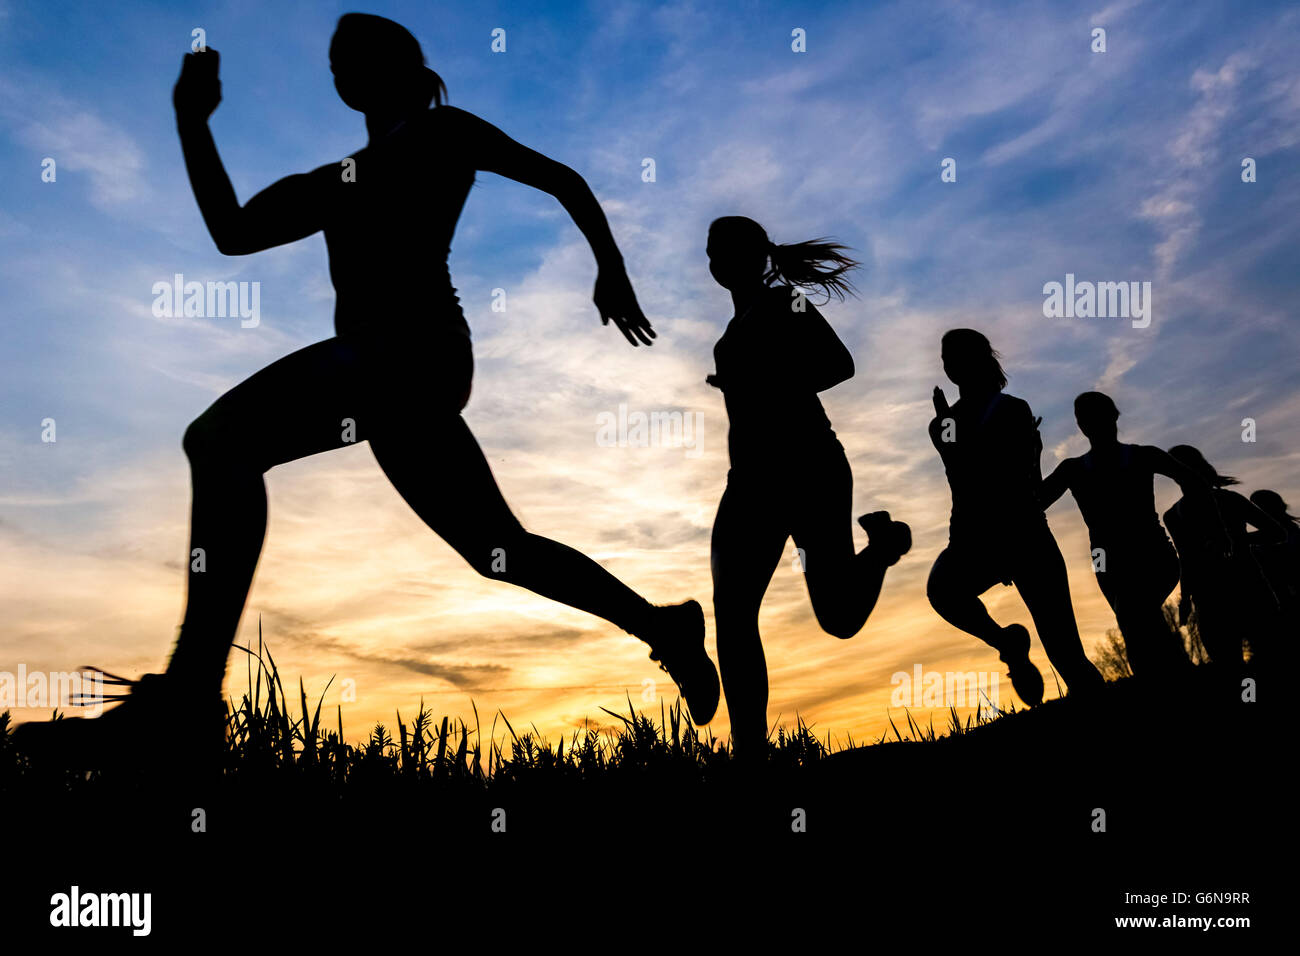 Silhouette of female jogger at sunset, sequence, phases - Stock Image